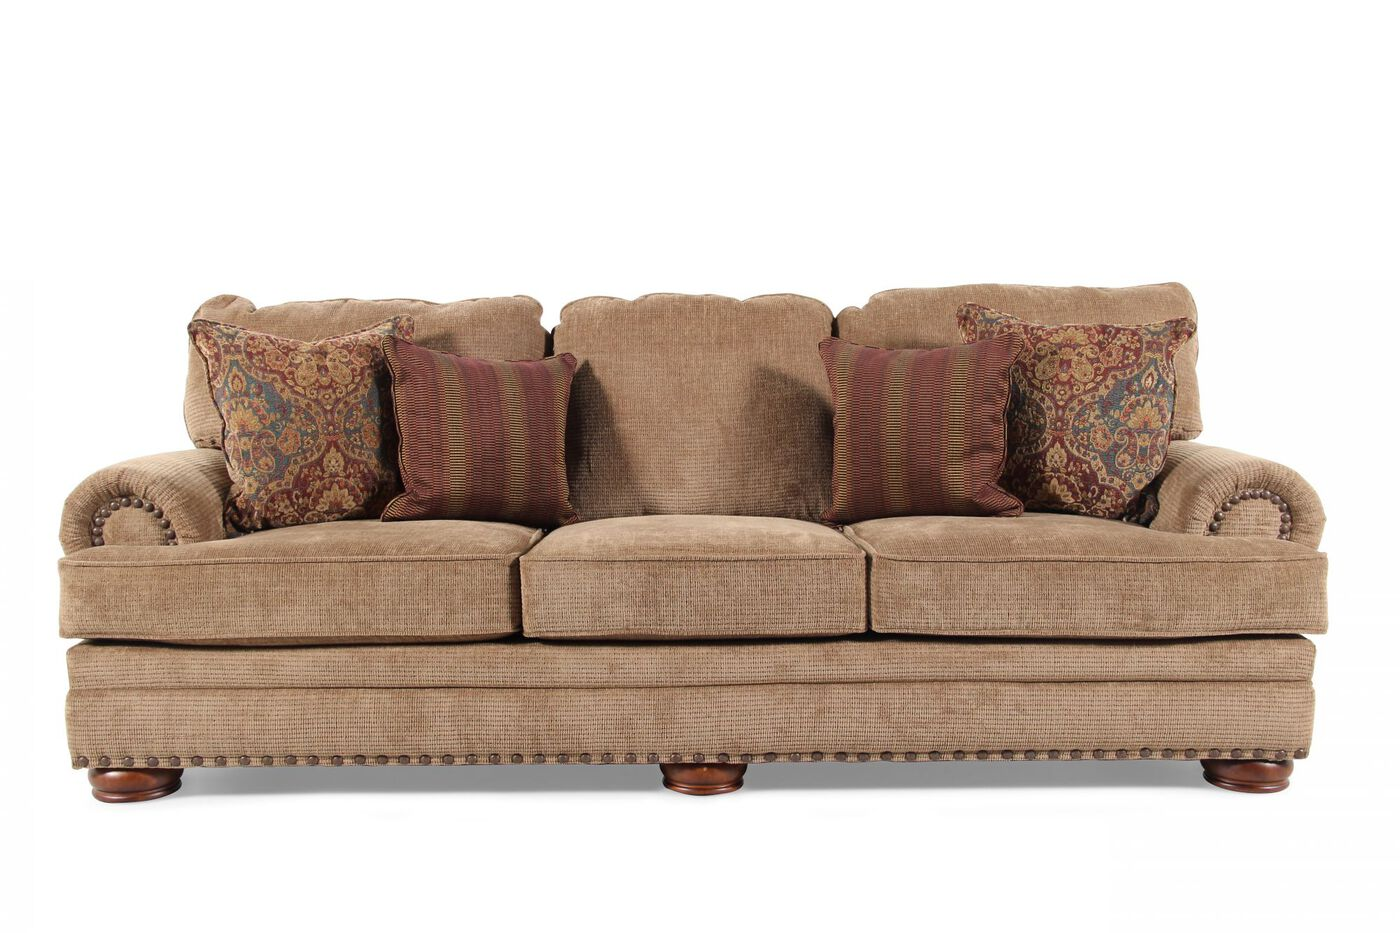 Low Cost Bedroom Furniture Nailhead Accented 101 Quot Sofa In Desert Brown Mathis